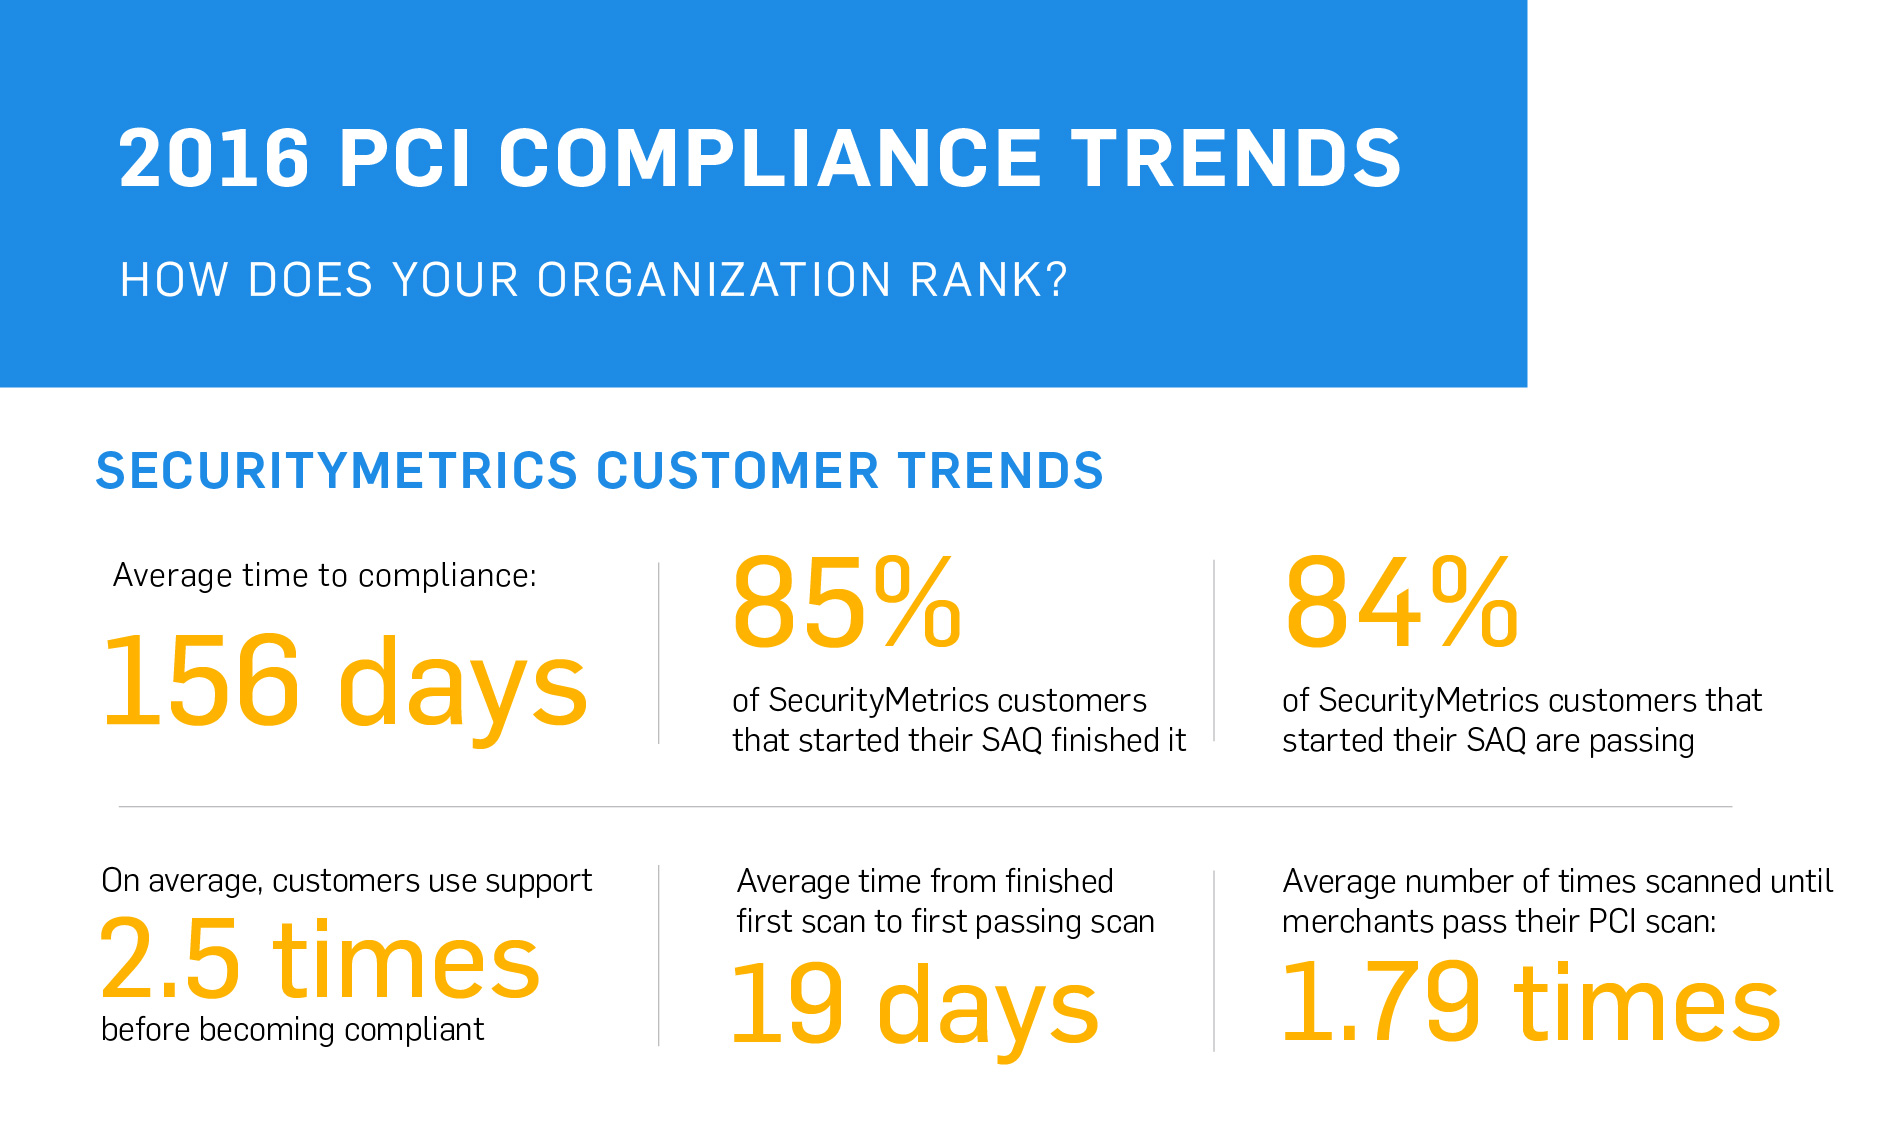 2016 PCI Compliance Trends